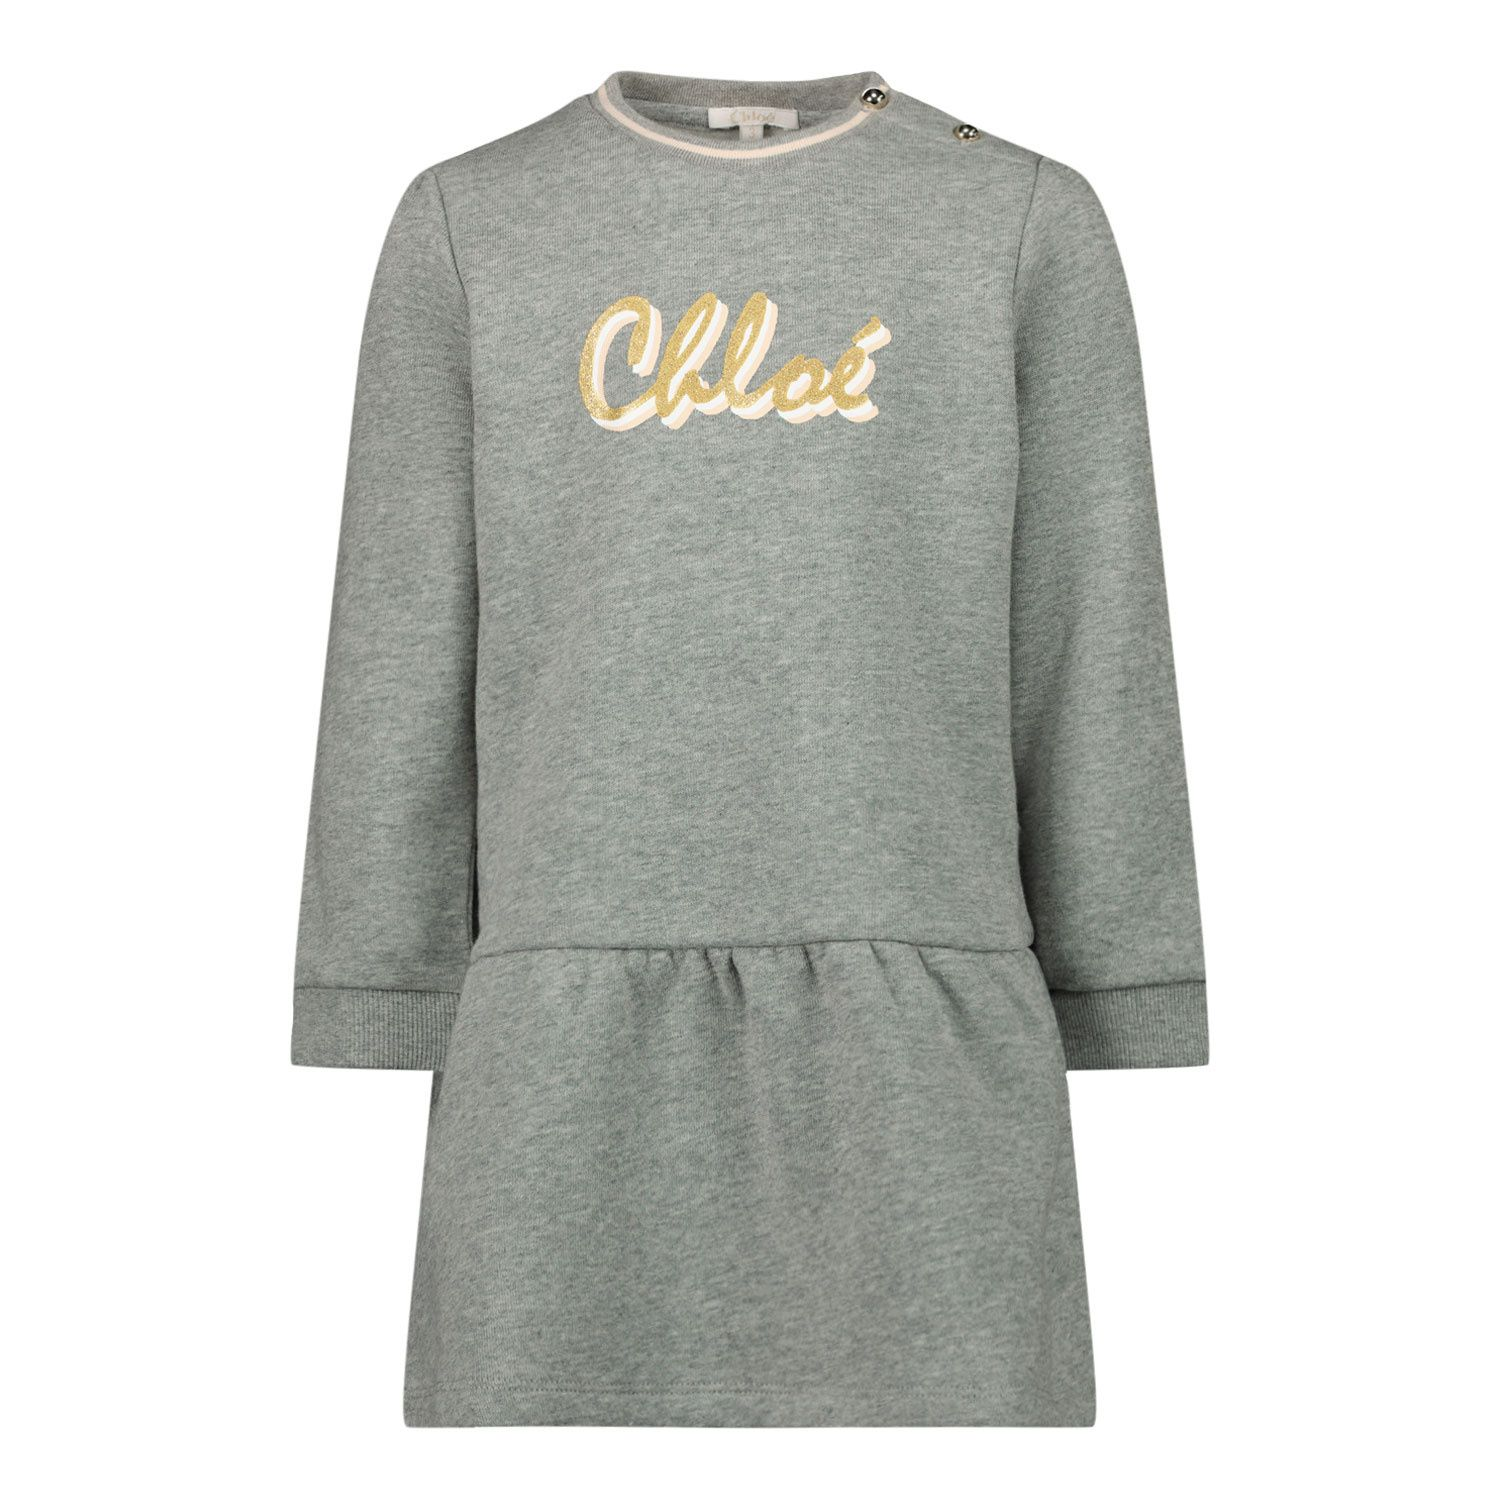 Picture of Chloé C02272 baby dress light gray